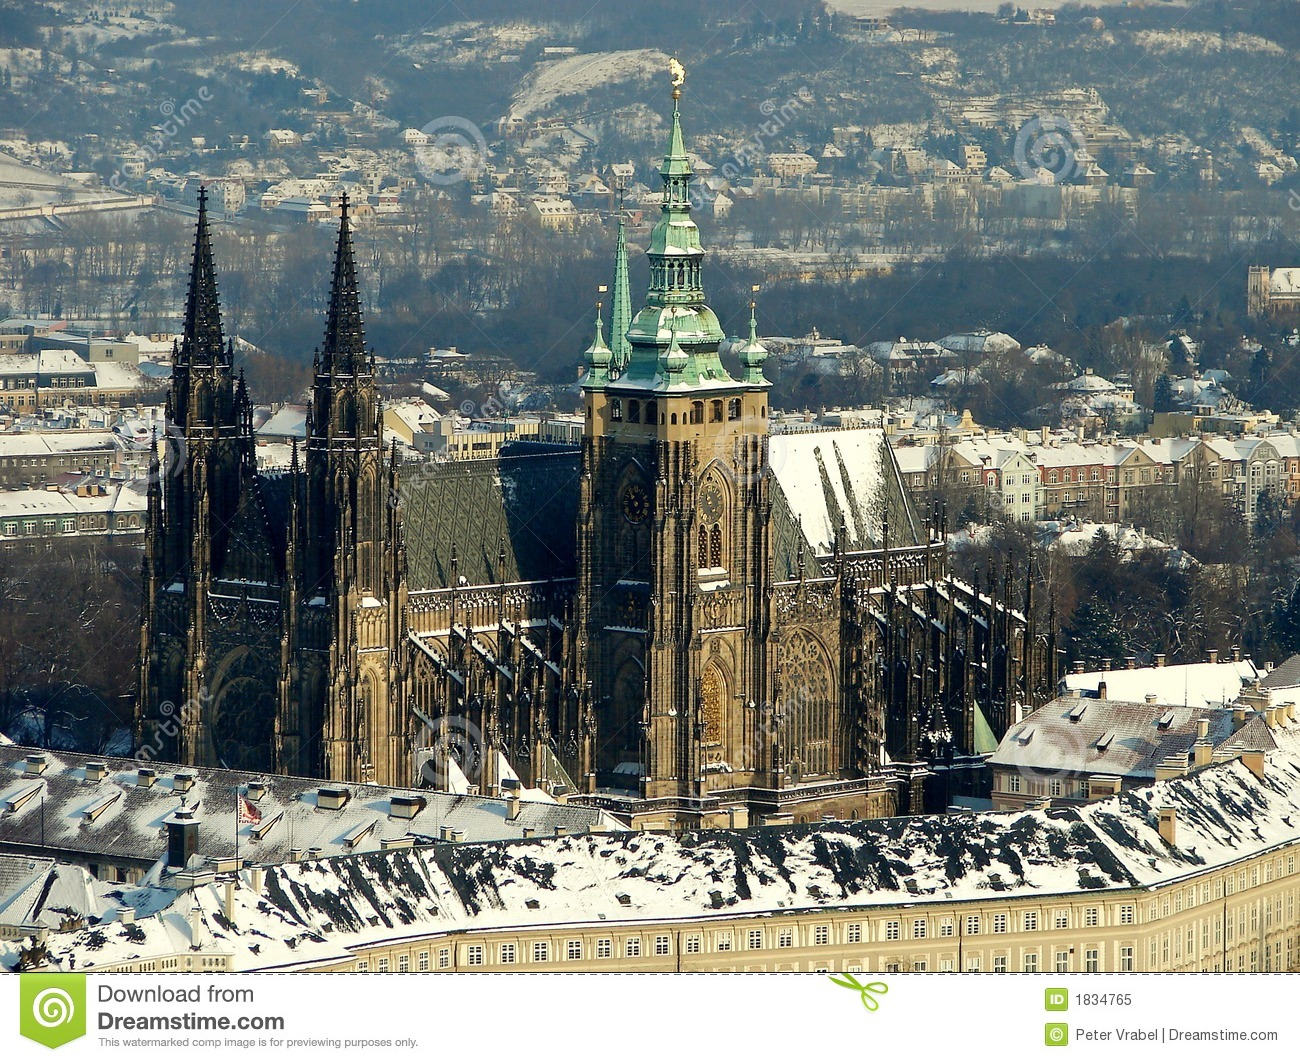 Praha - Castle Royalty Free Stock Photo - Image: 1834765